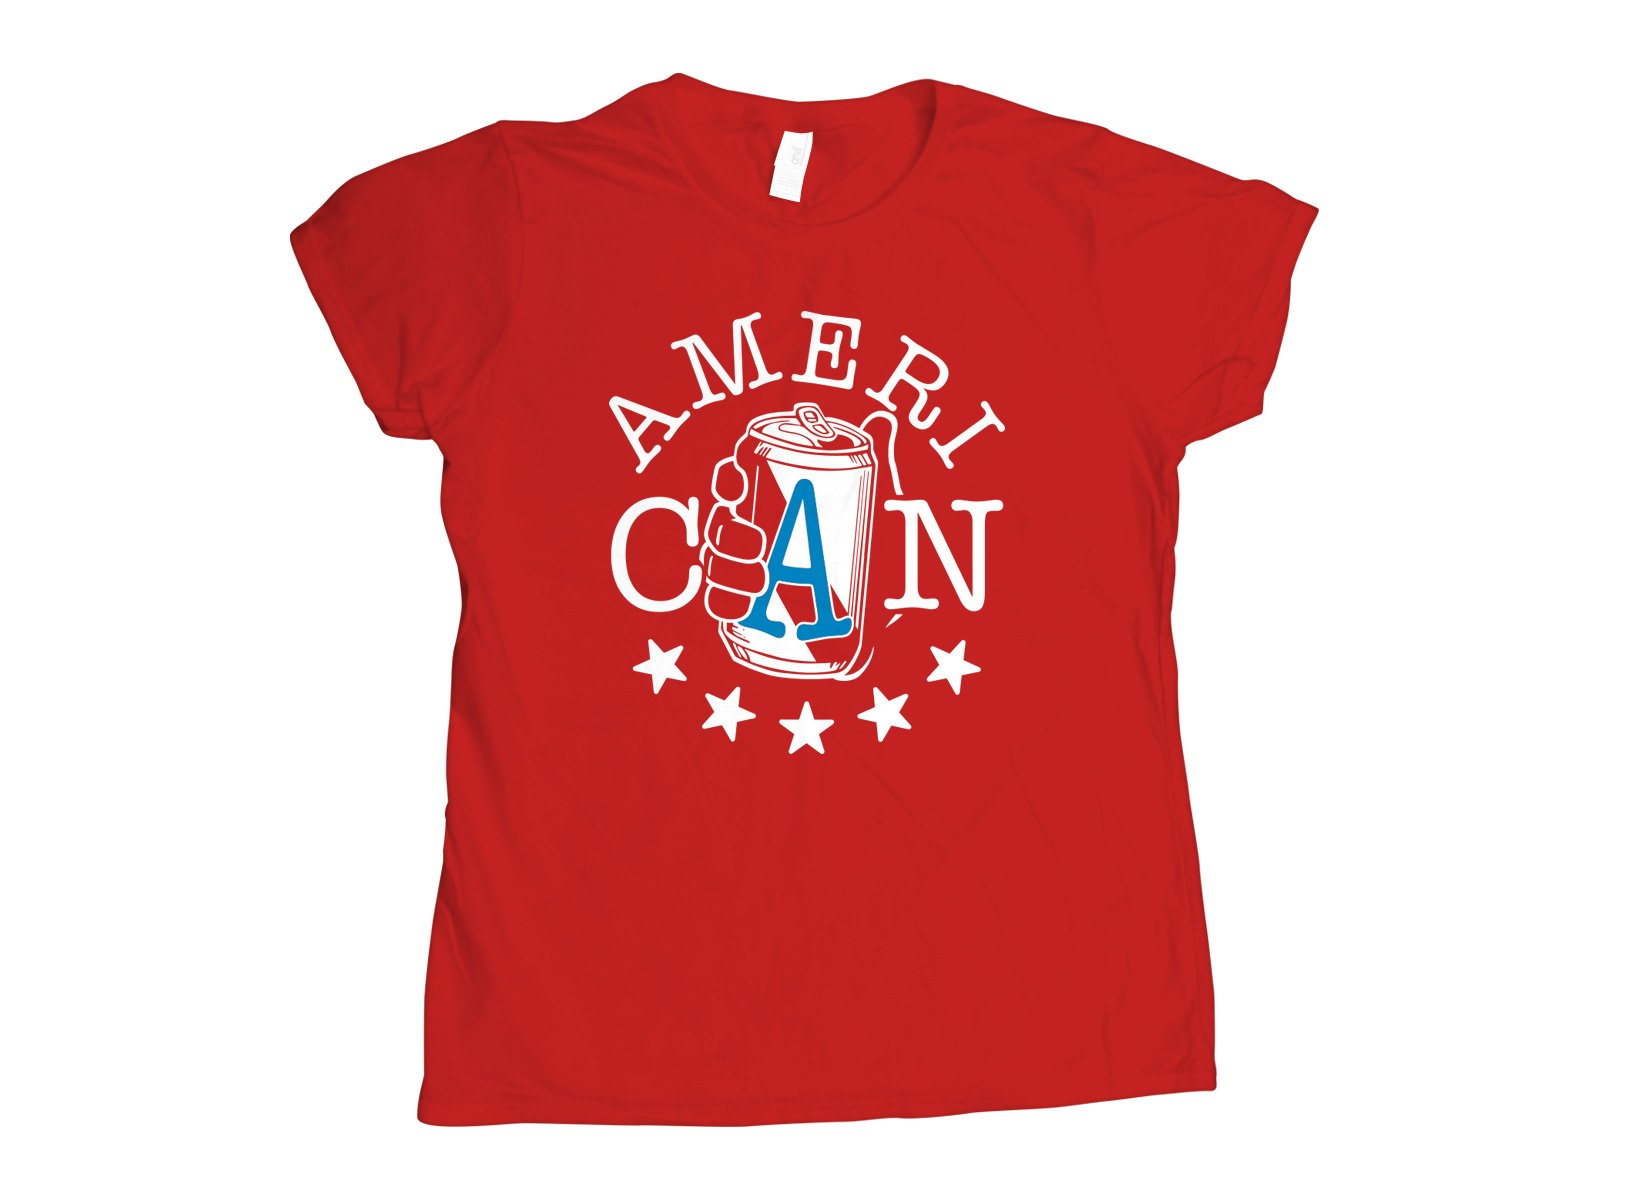 AmeriCAN on Womens T-Shirt